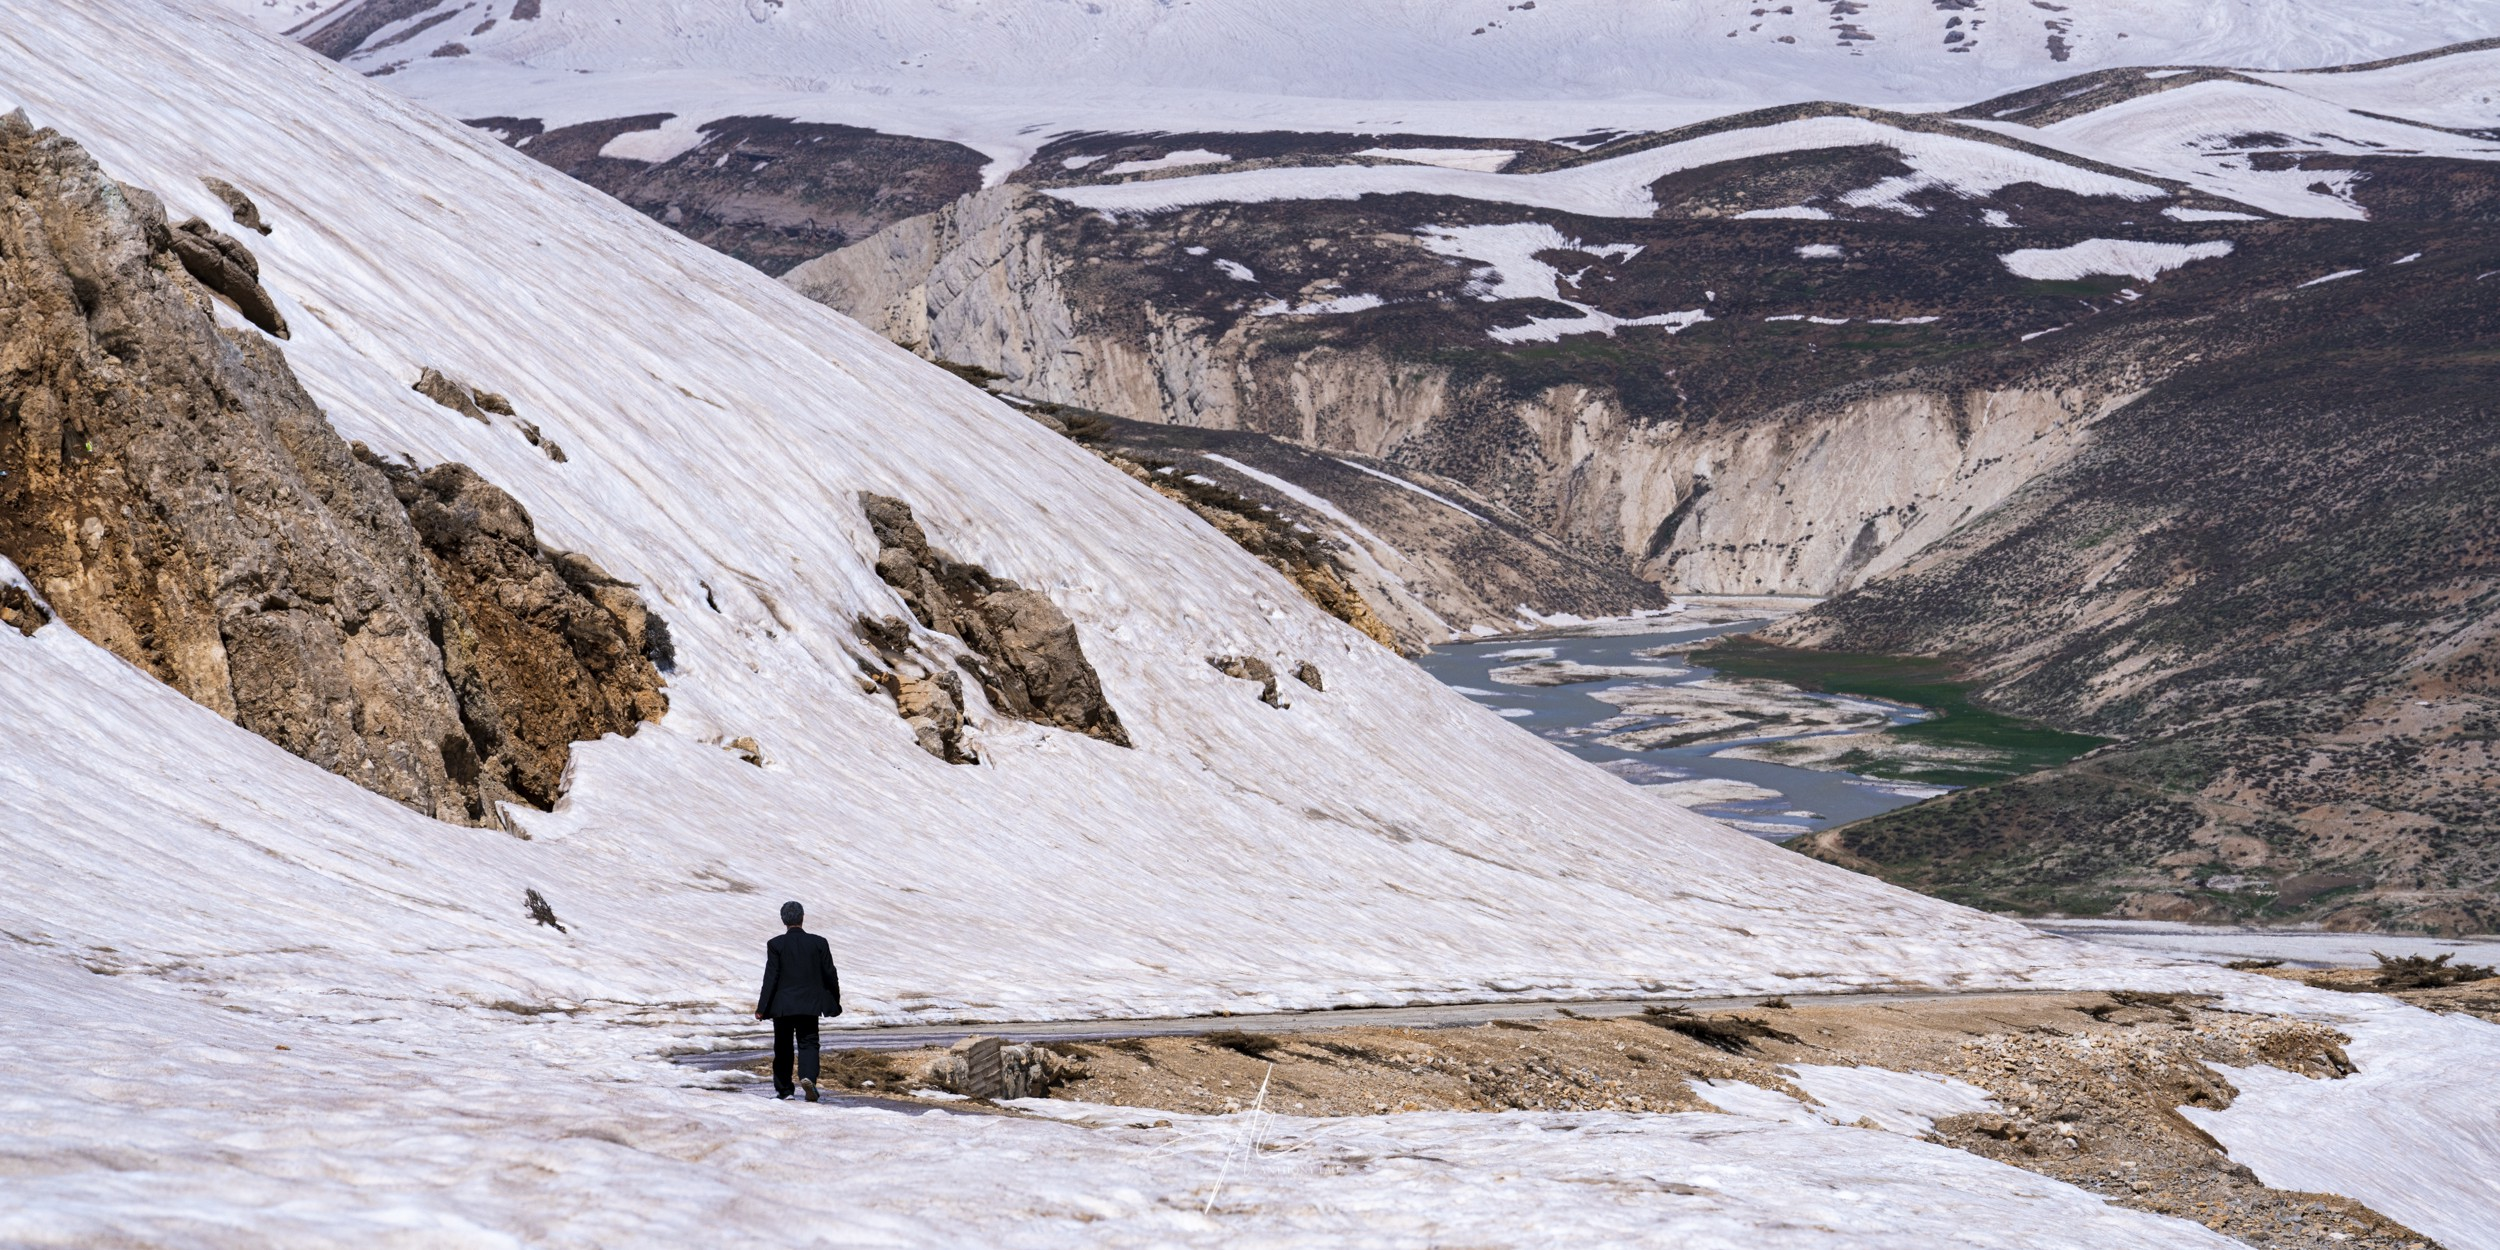 As I was capturing the amazing glacier, a man walked into my frame and continued his way home.